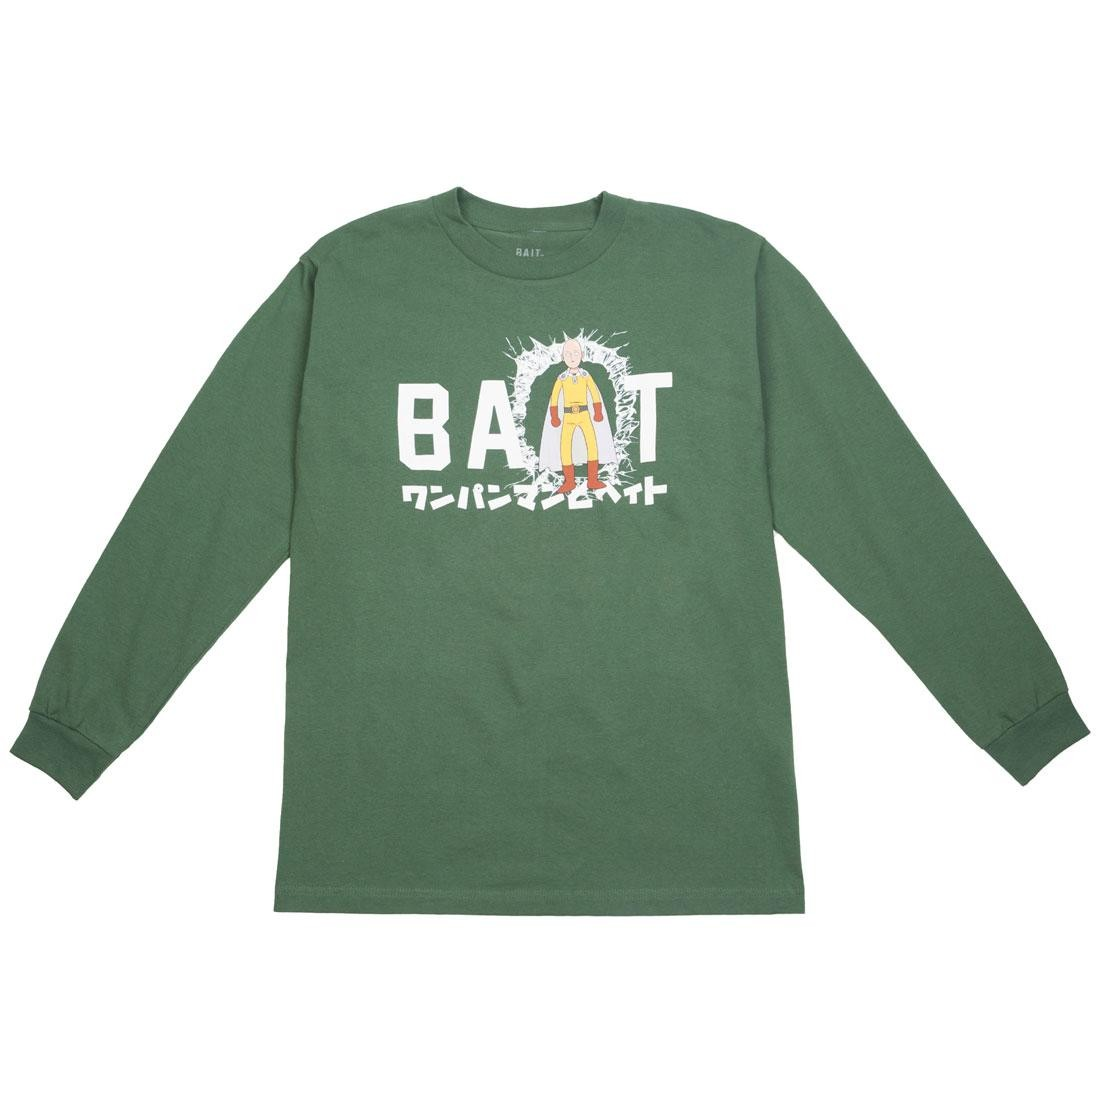 BAIT x One Punch Man Men Classic BAIT Logo Long Sleeve Tee (green / forest)